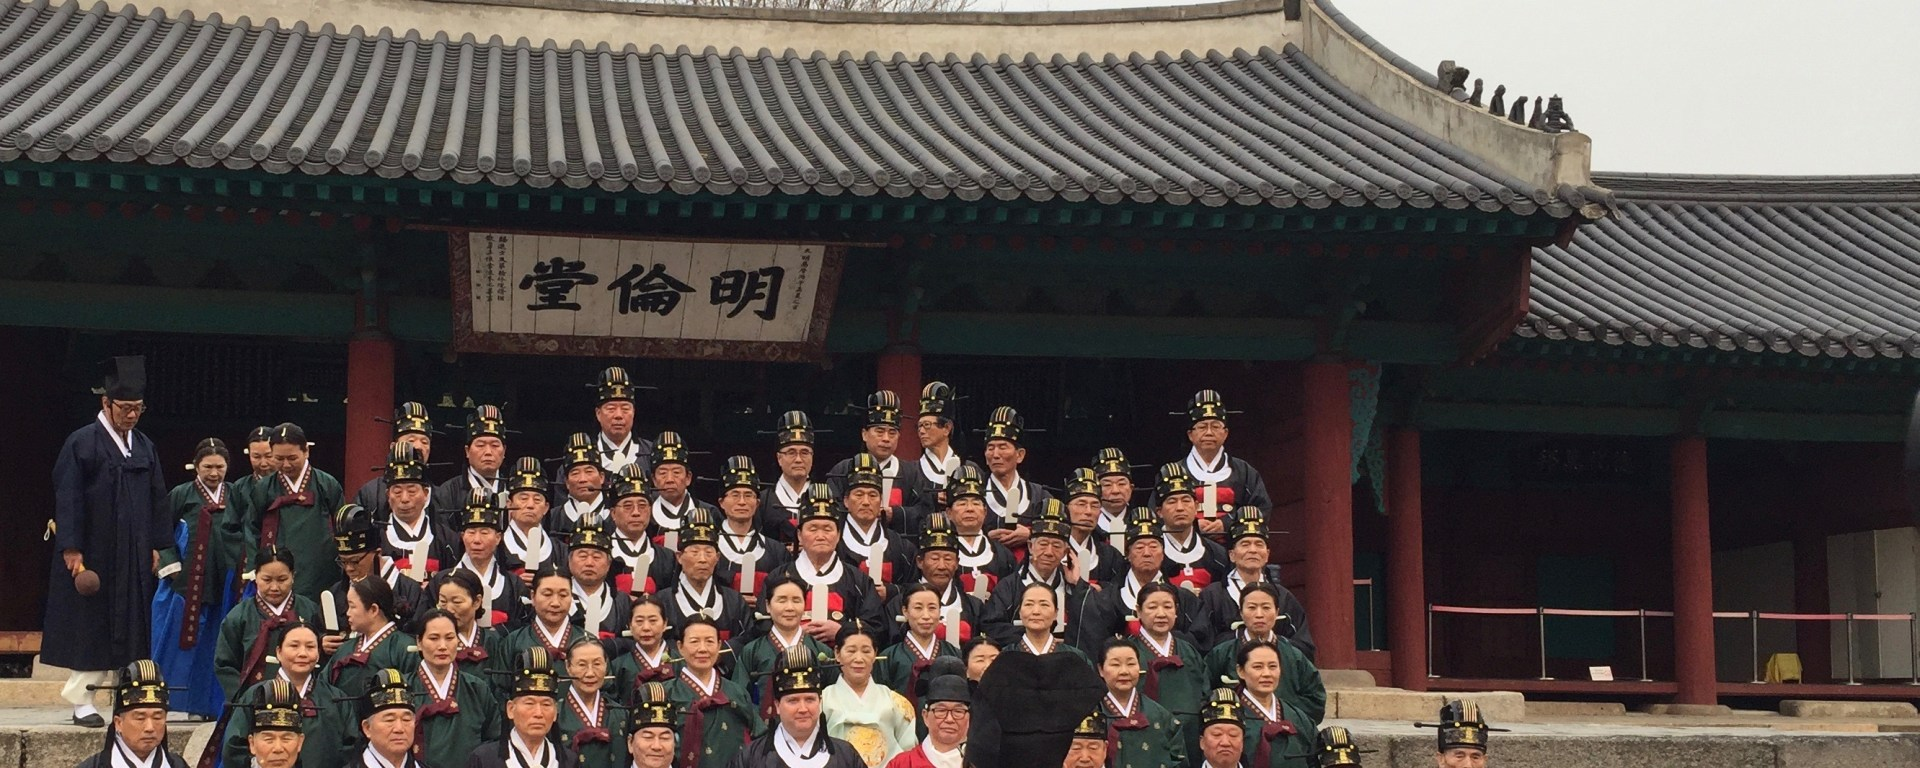 Confucius Ceremony At SungkyunKwan University In South Korea